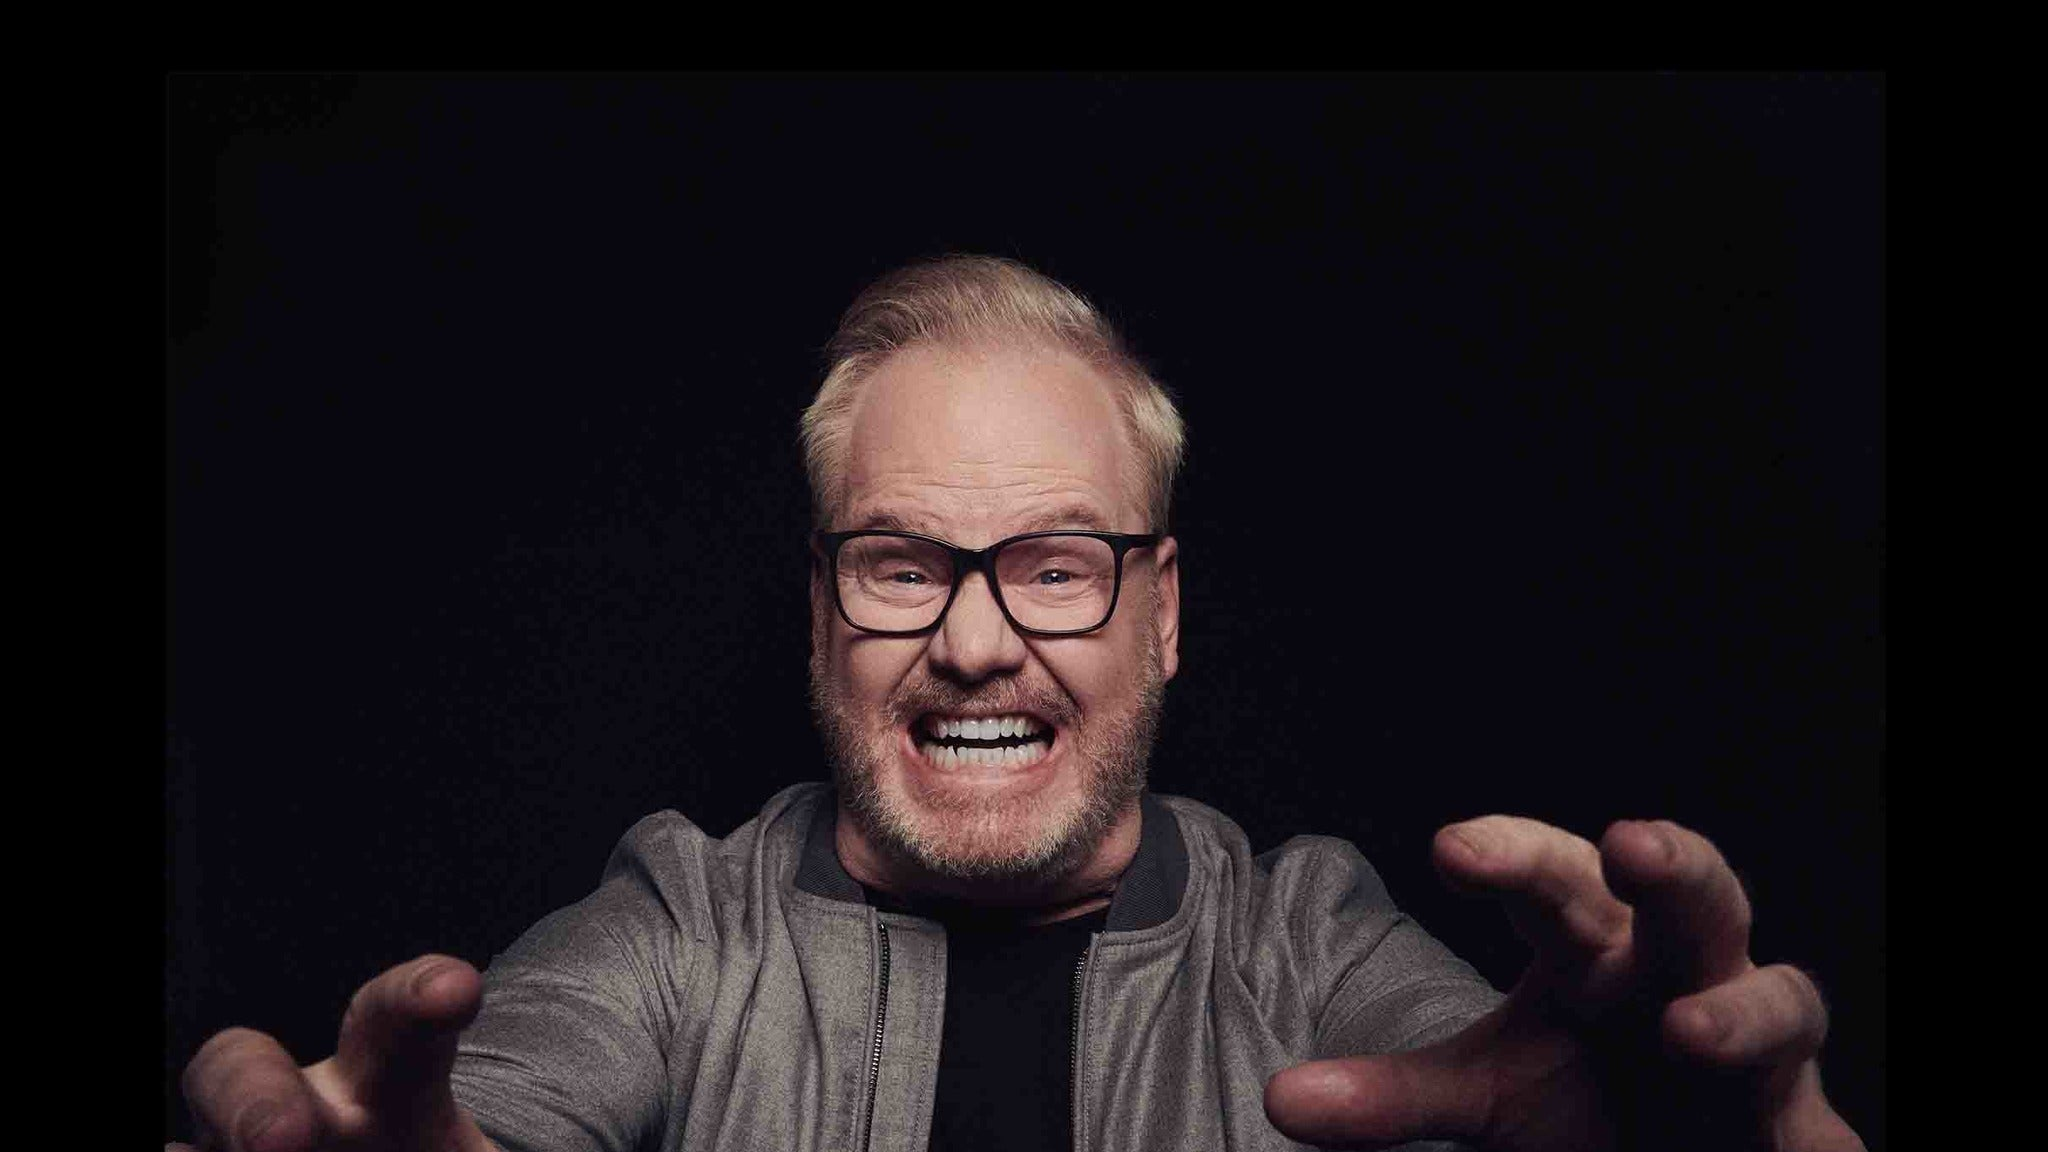 Jim Gaffigan: the Fun Tour! pre-sale password for early tickets in Hollywood